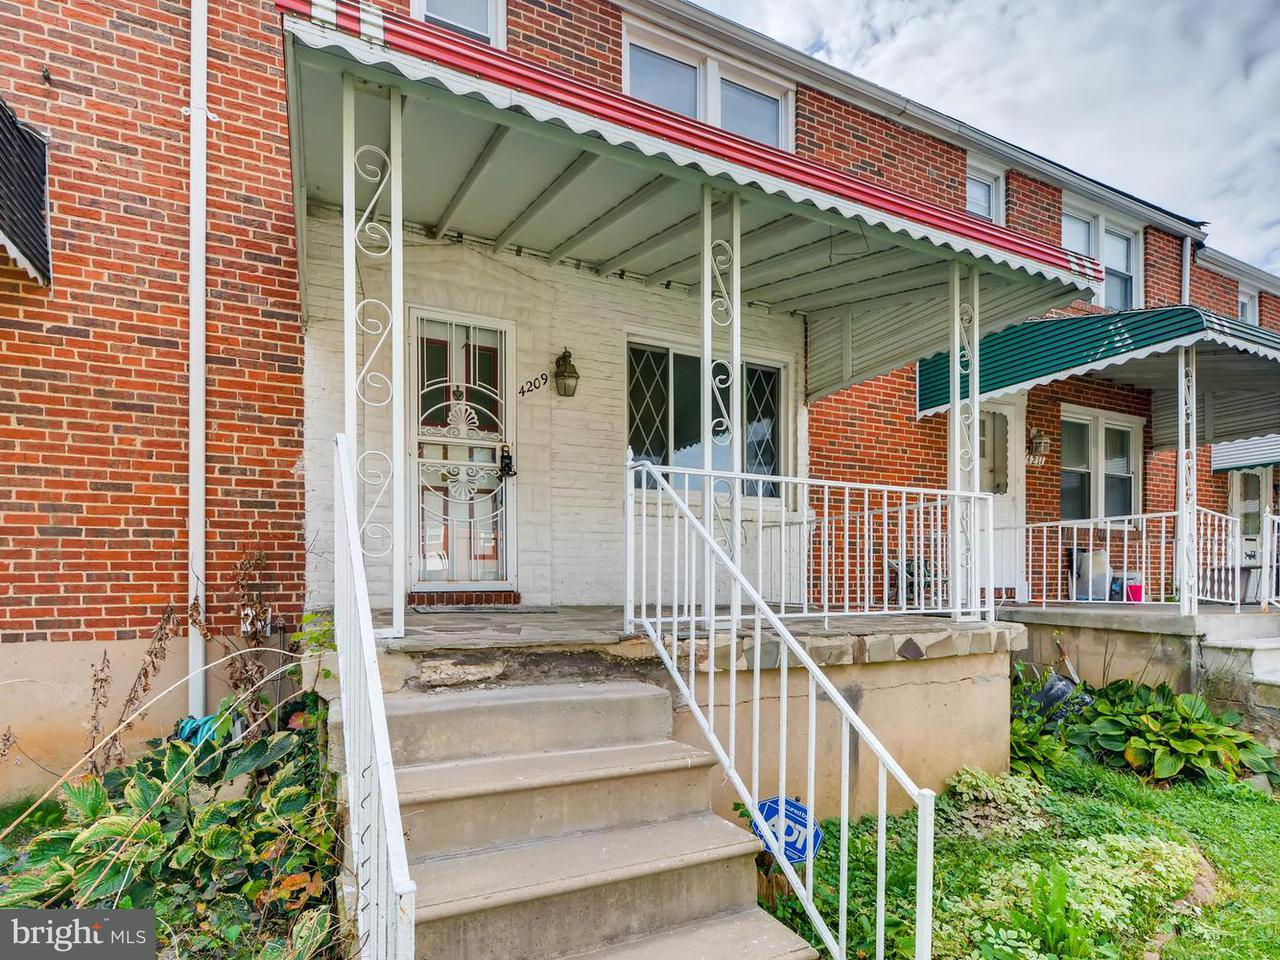 Single Family for Sale at 4209 N Rogers Ave Baltimore, Maryland 21215 United States